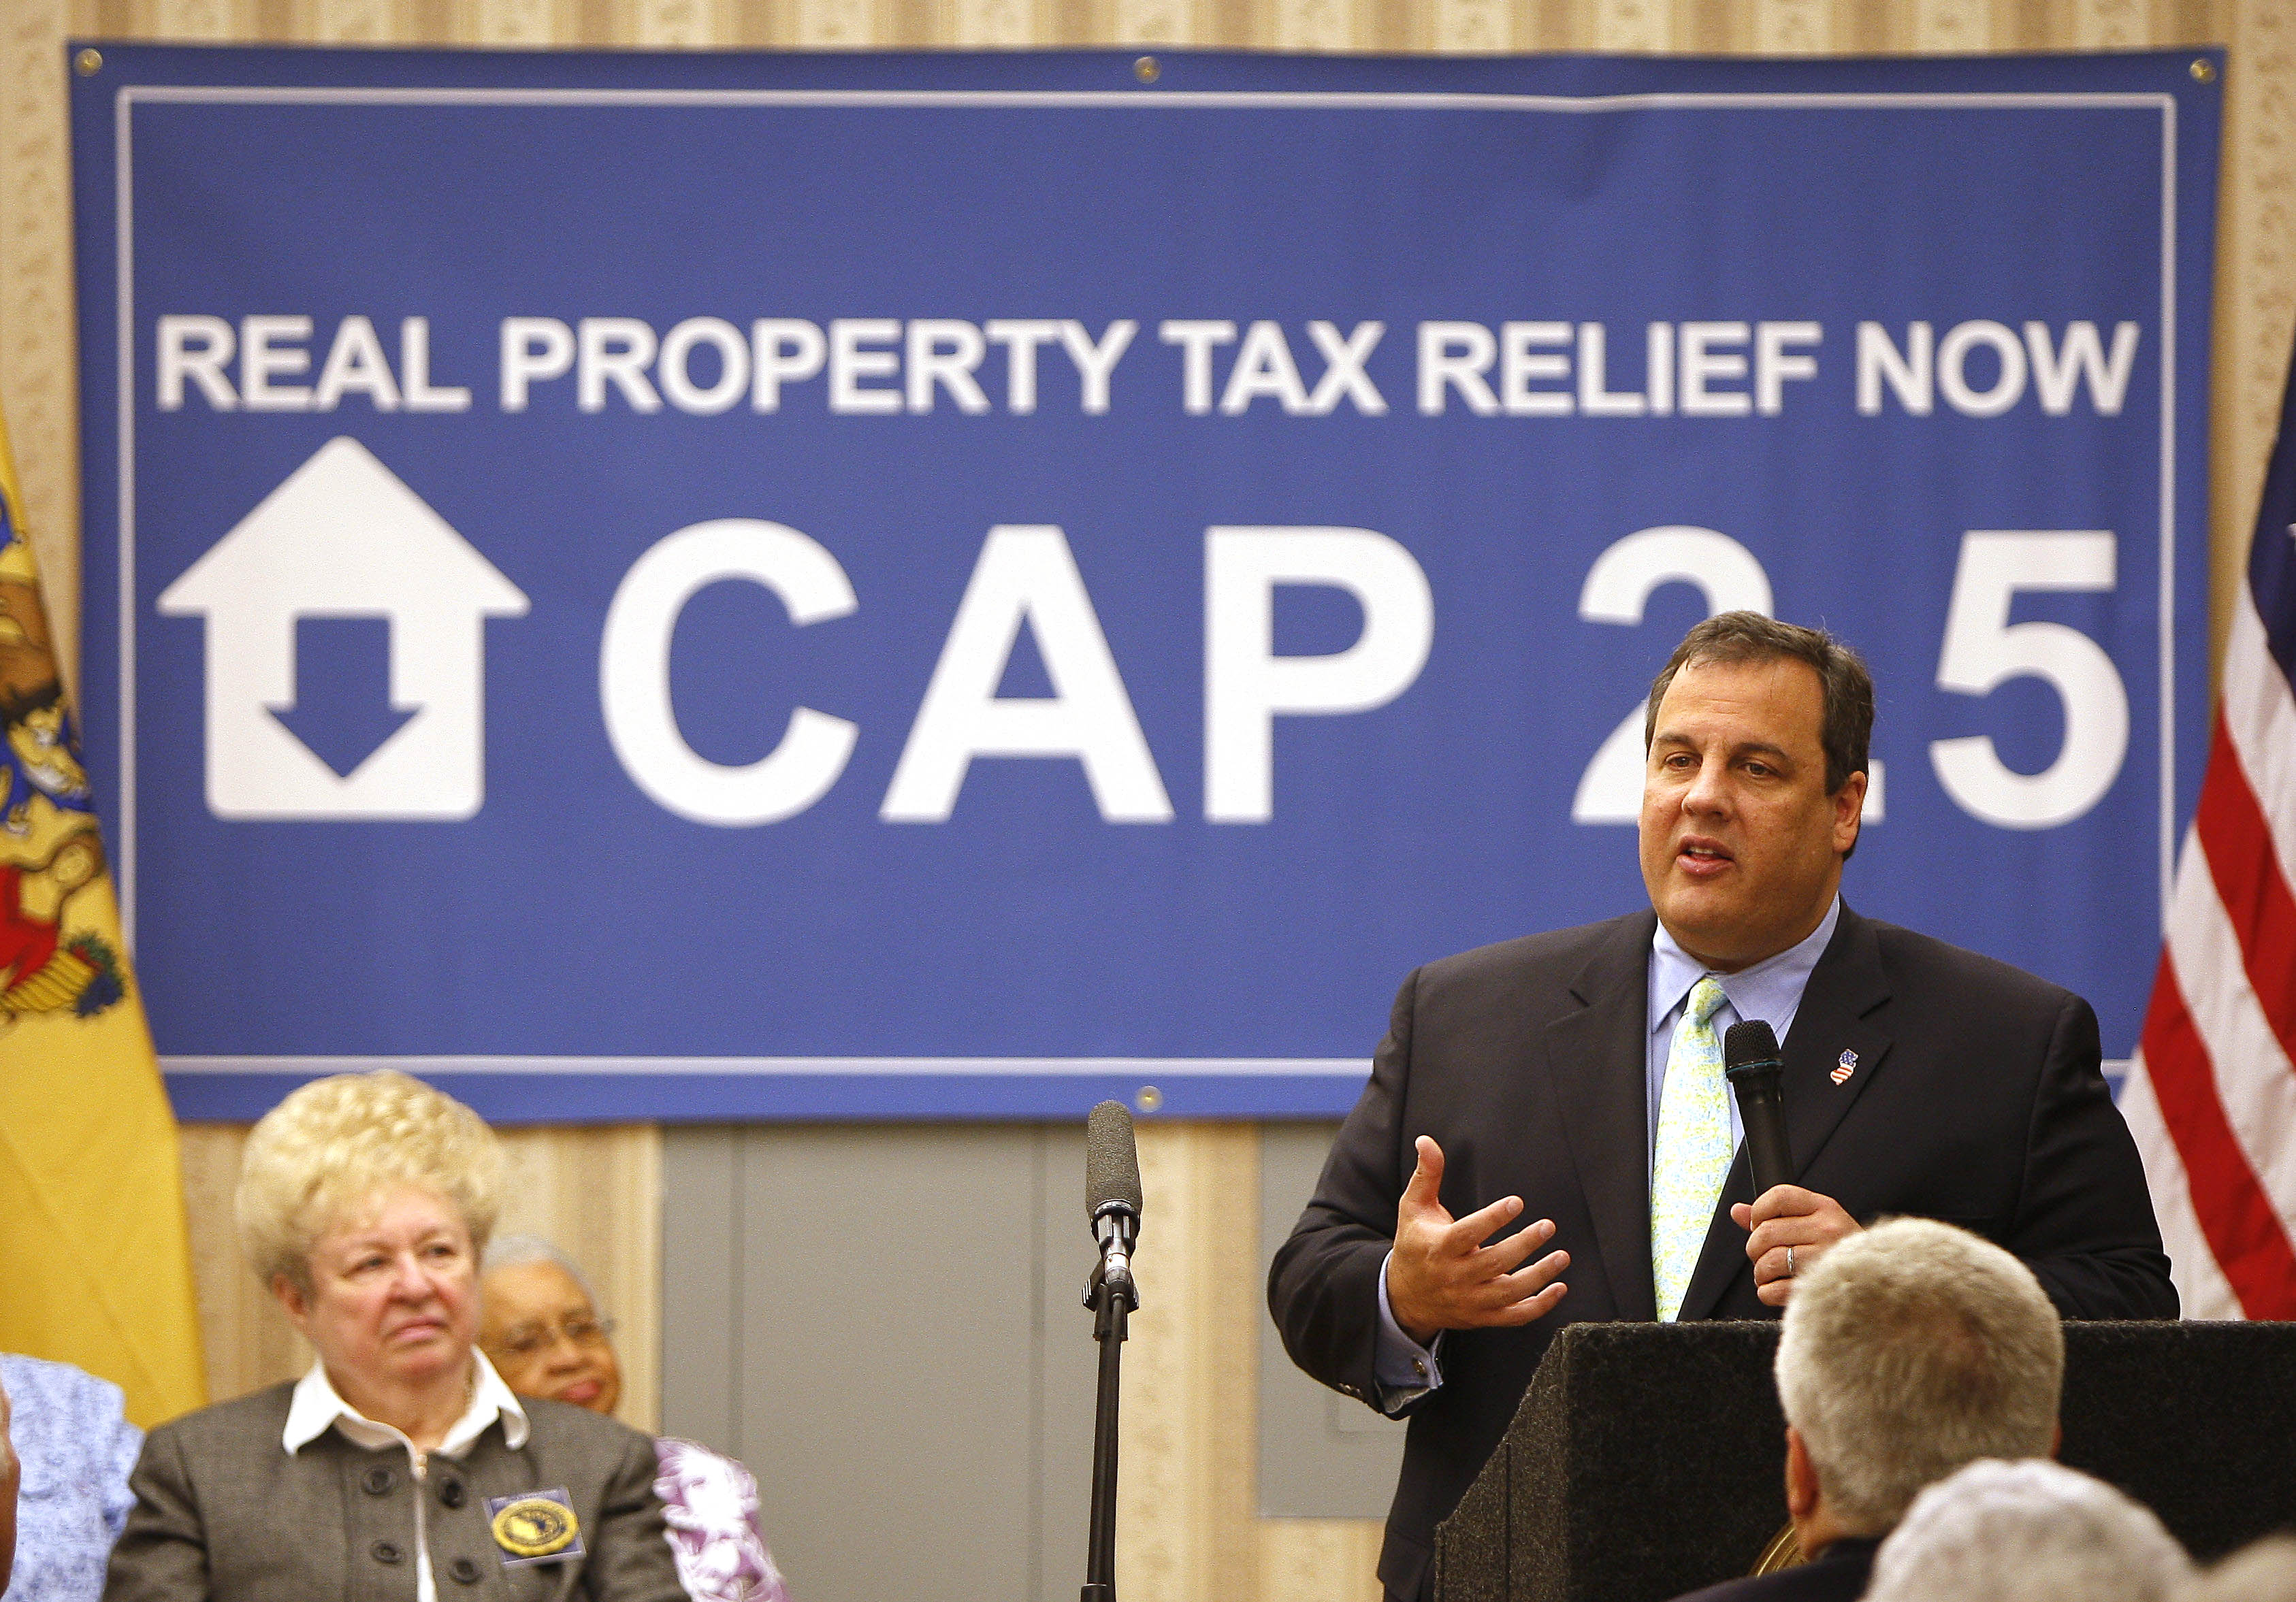 Christie's cap started to rein in property taxes. Will the trend continue under Murphy?